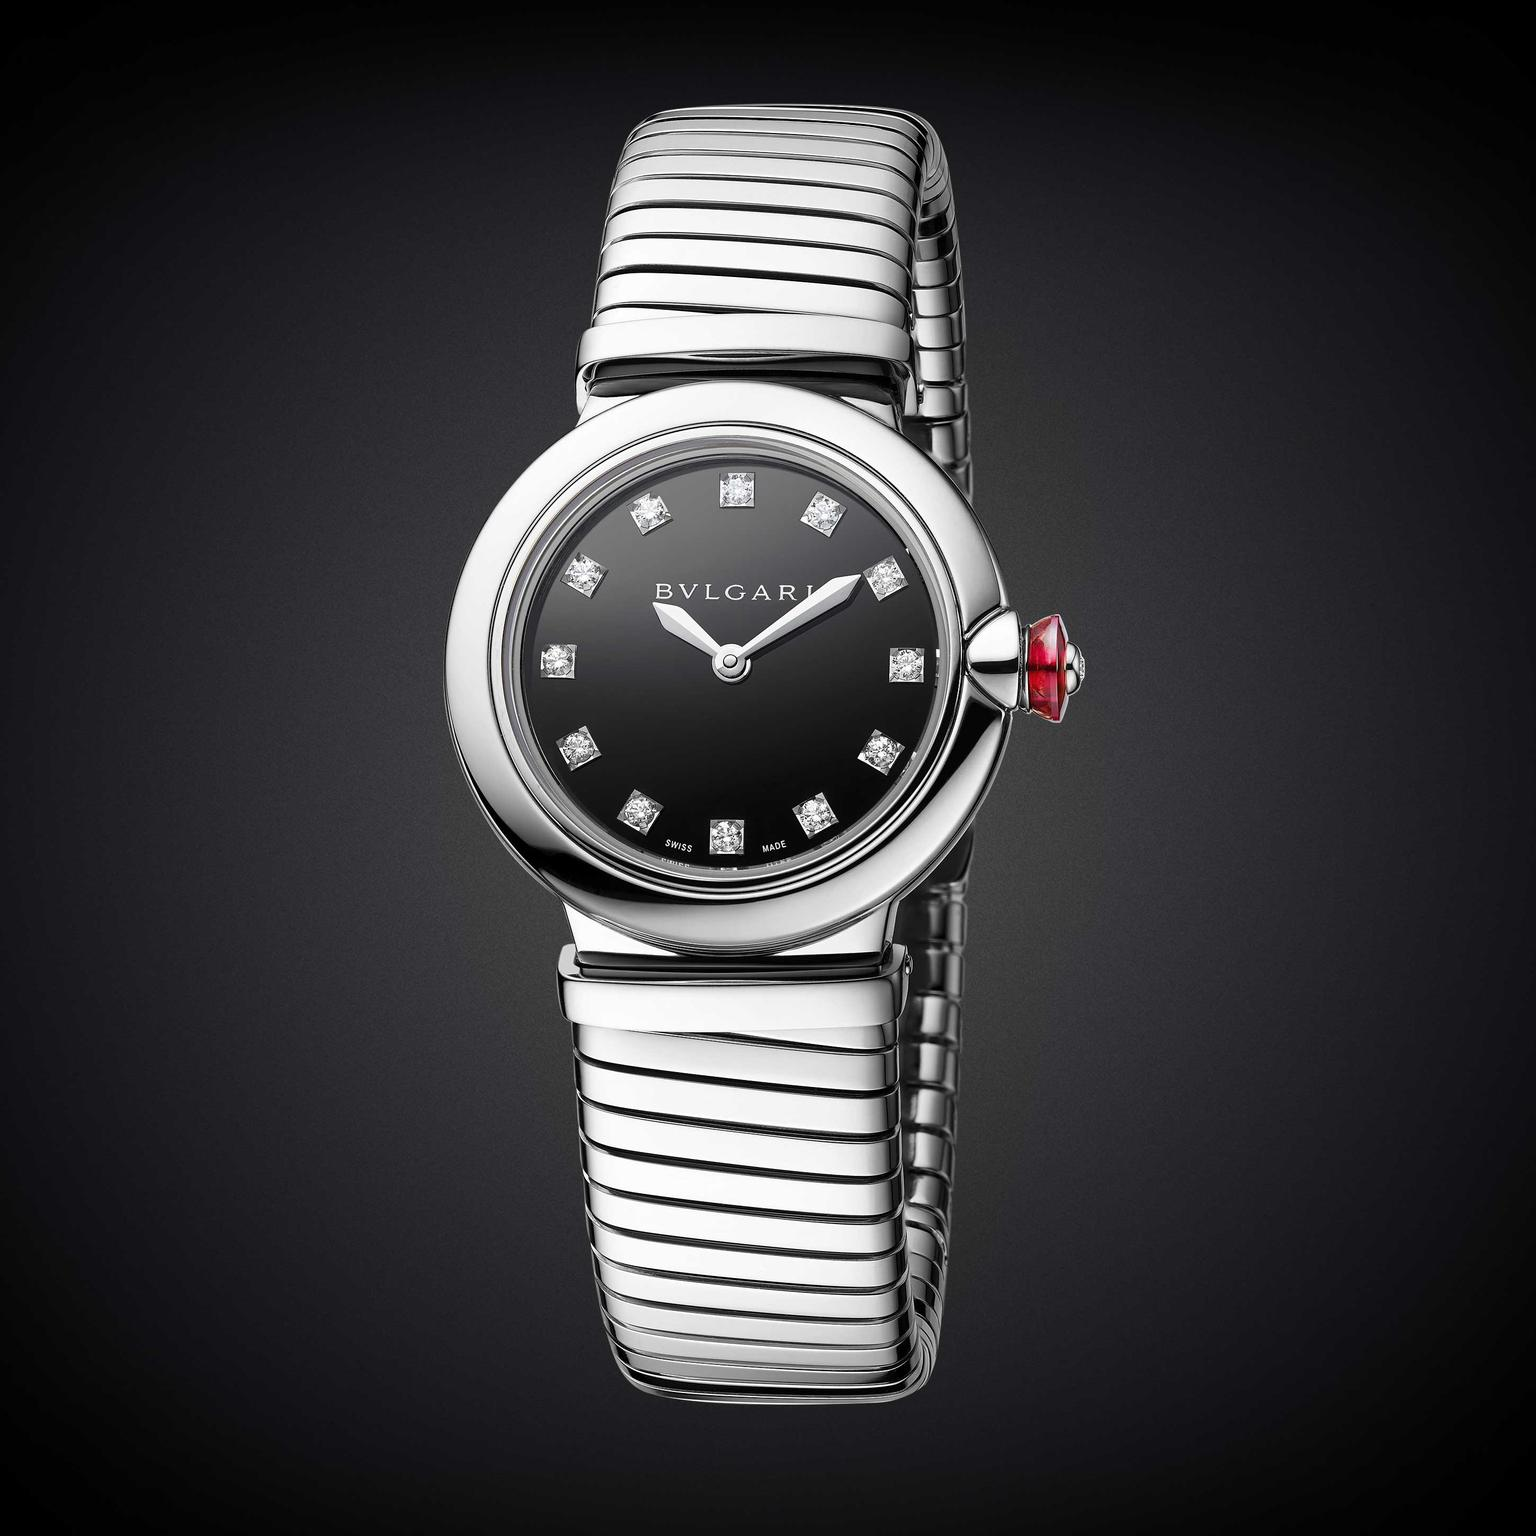 Bulgari Lvcea Tubogas 28mm stainless steel and diamond women's watch 2018 Price: €5,350